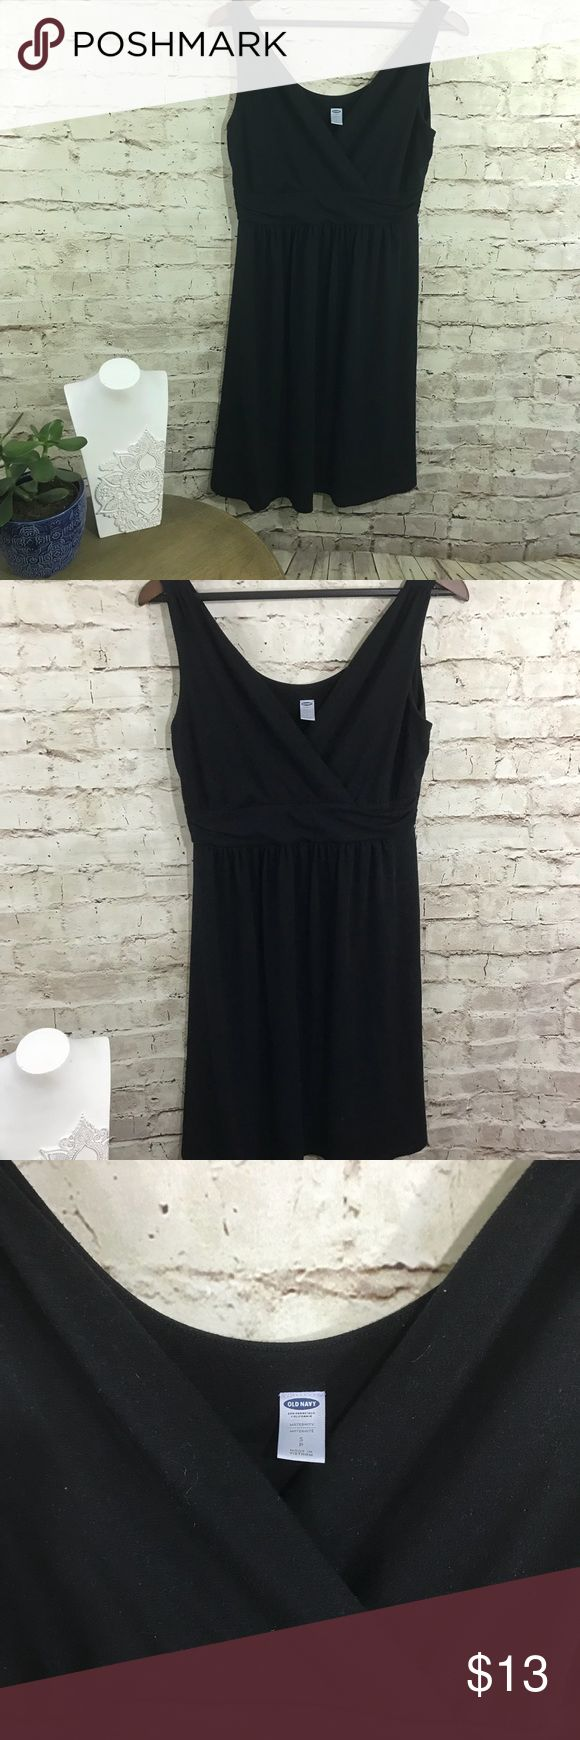 Old navy black maternity dress Gently used black maternity dress. Size M. Old Navy Dresses Midi